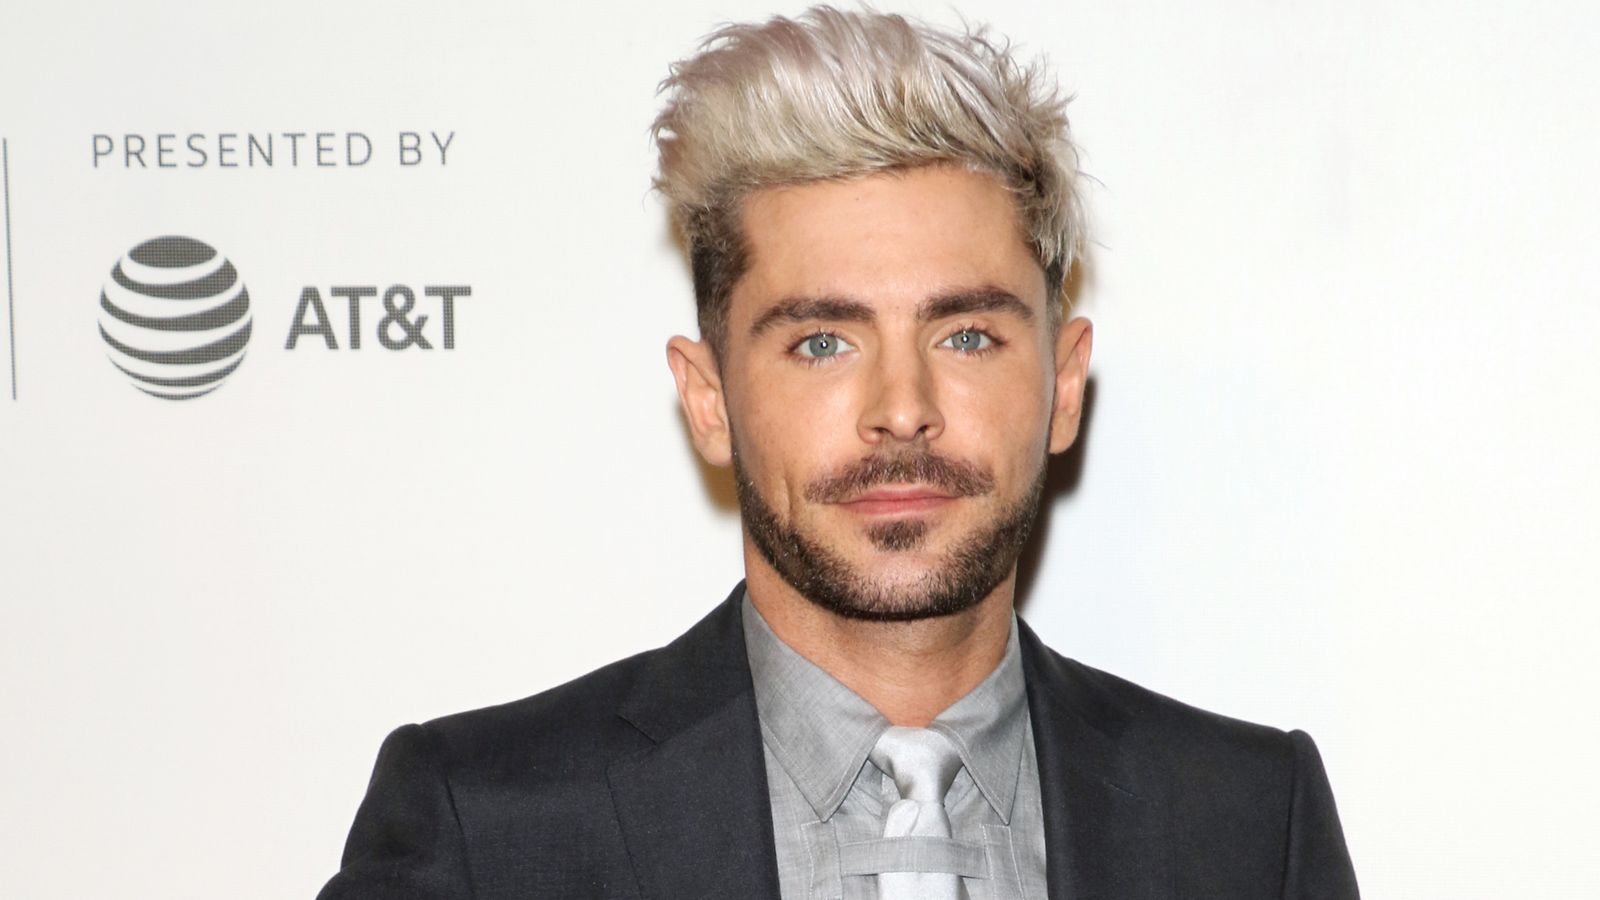 Zac Efron falls ill abroad while filming his Killing Zac Efron survival show - EpicNews